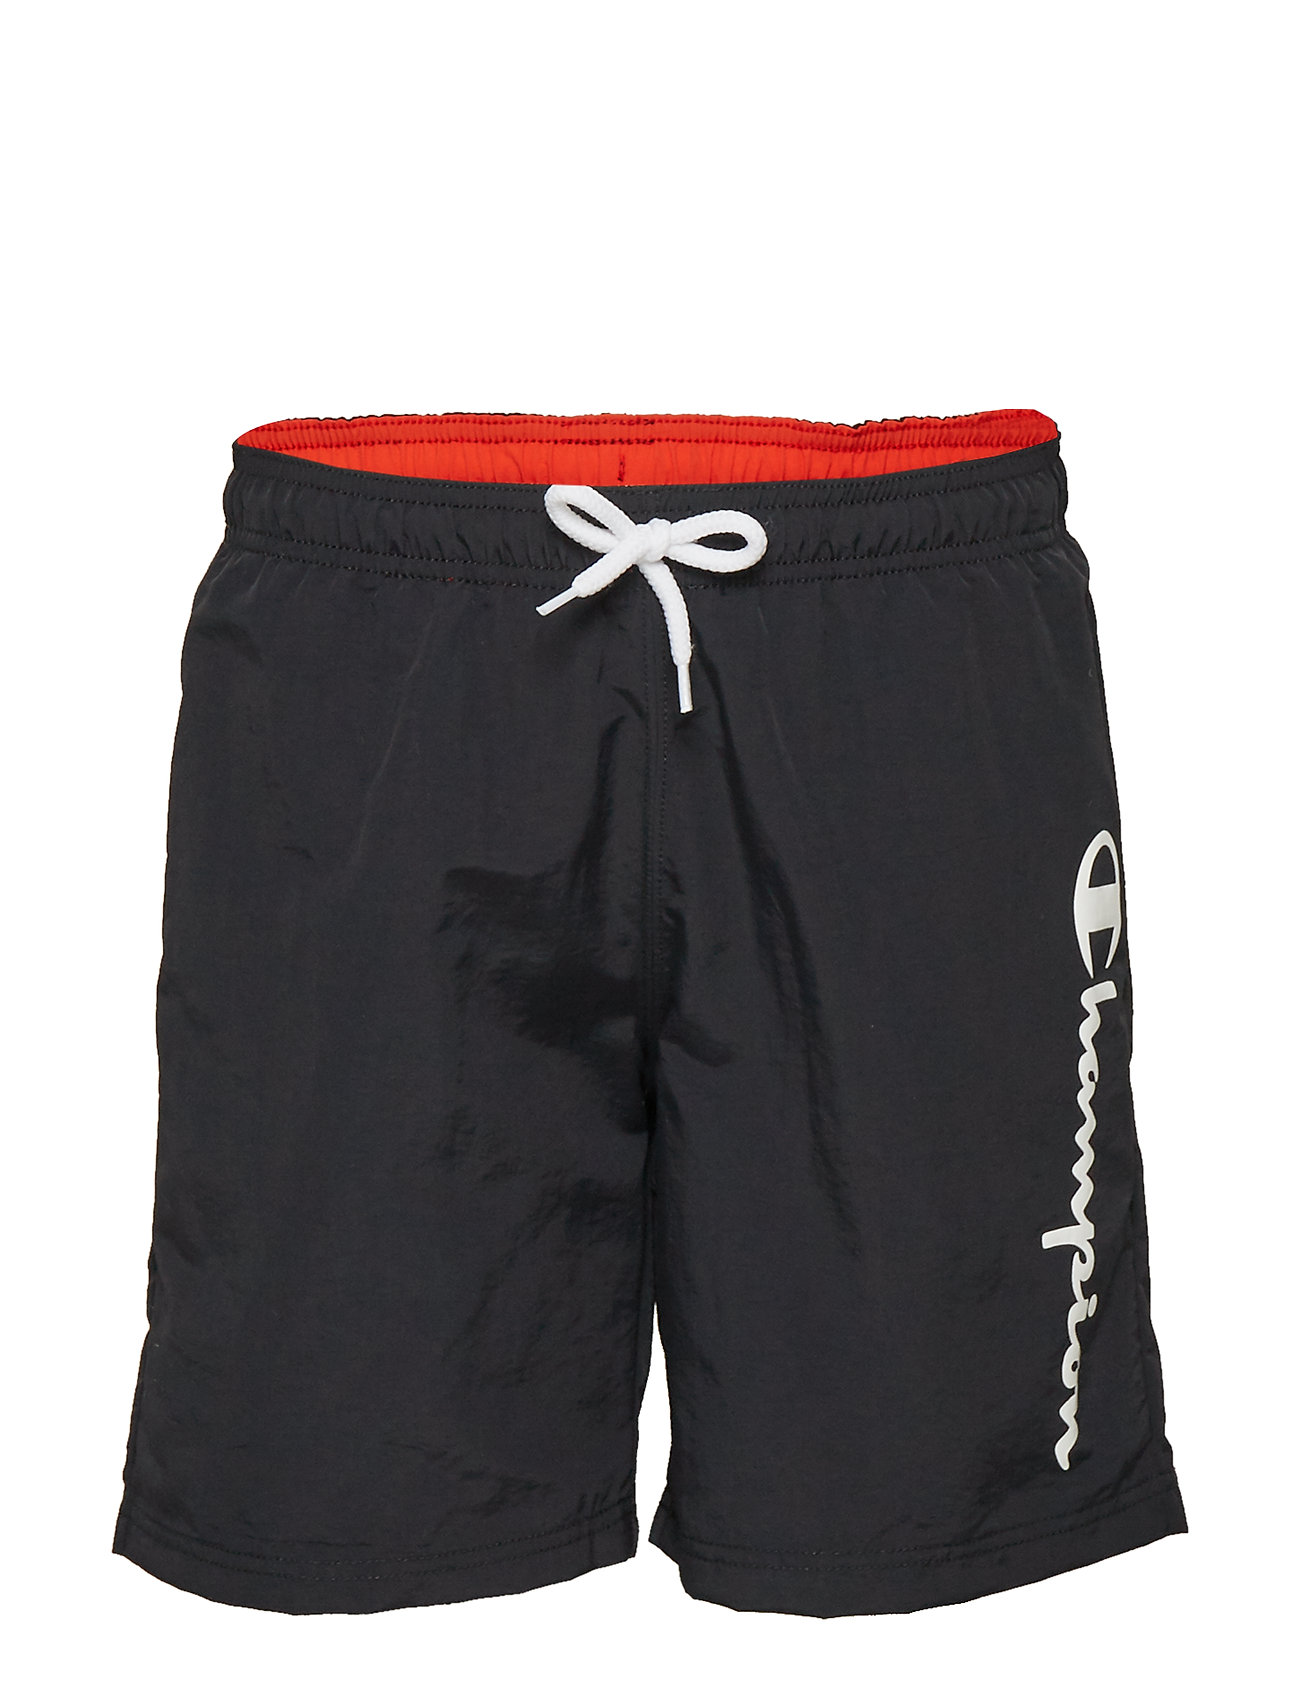 Champion Beachshort - ANTHRACITE